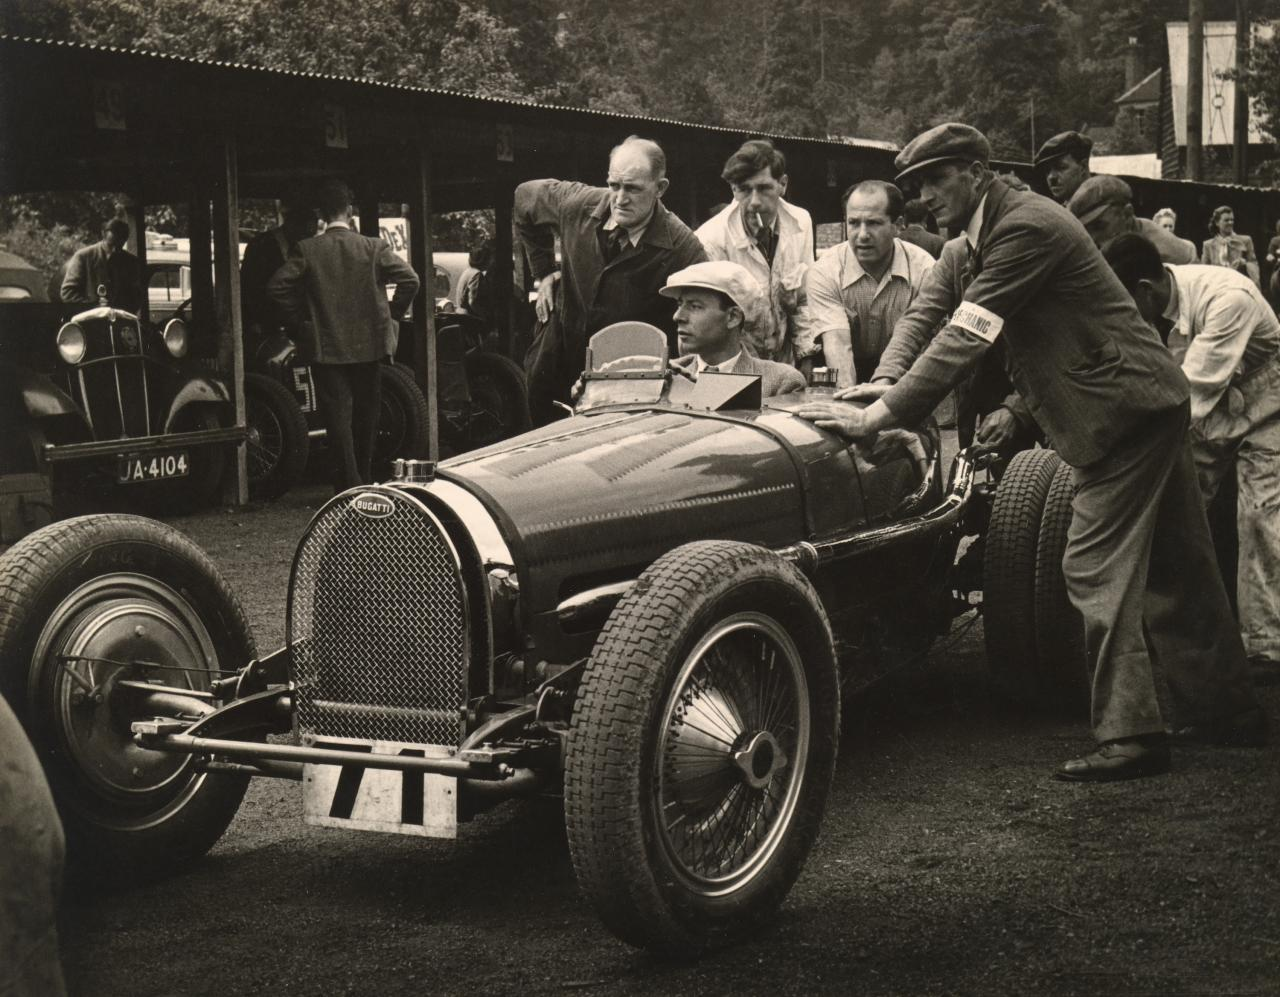 George Abecassis in his 3.3 litre, type 59 G.P. Bugatti, Shelsley Walsh